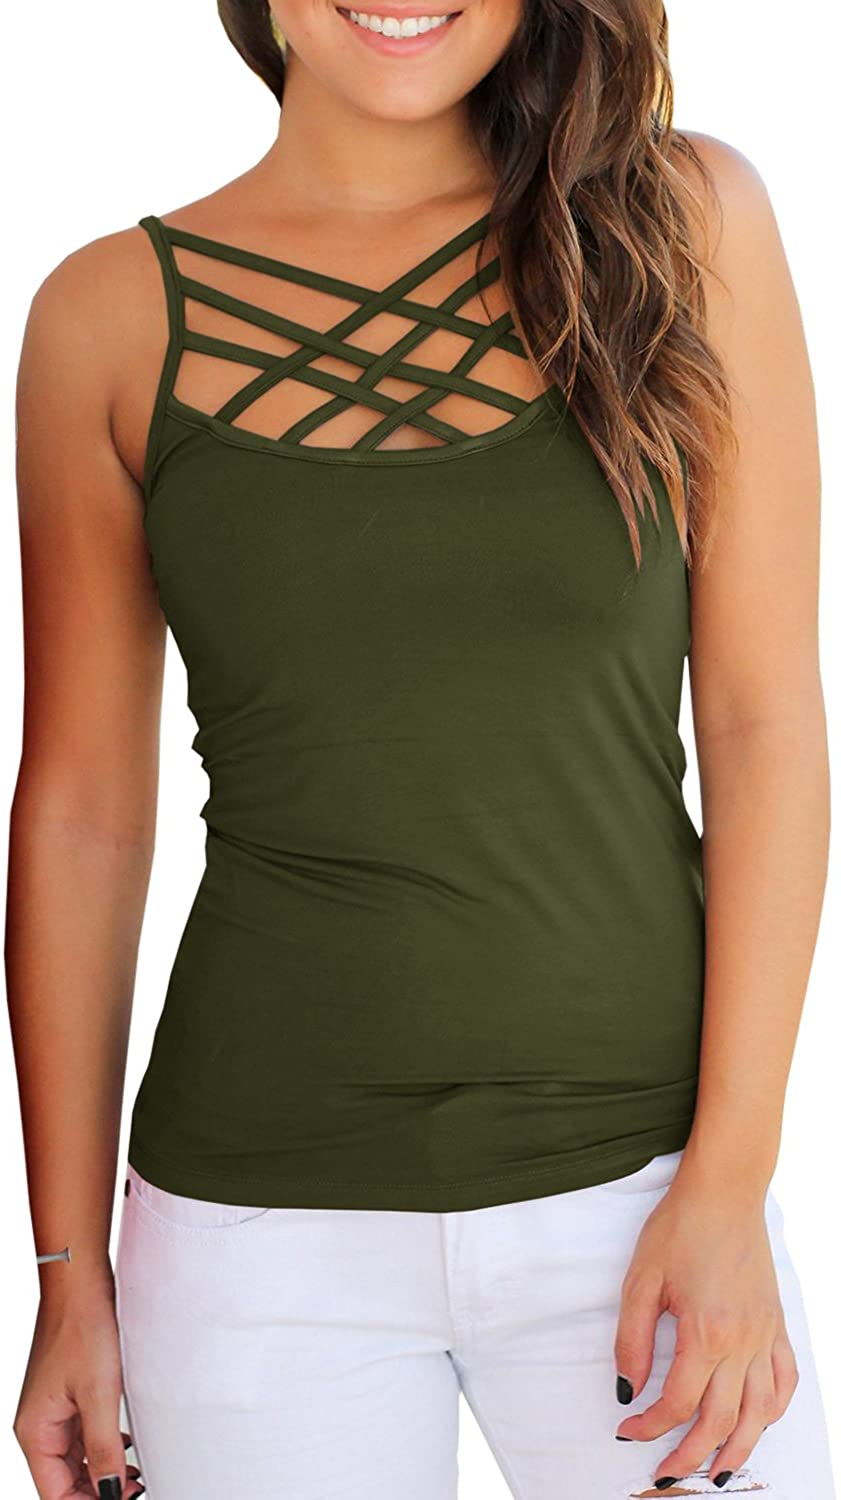 Yacooh Womens Tank Tops Cute Criss Cross Camisole Tops Hollowout Fitted Spaghetti Strap Sleeveless Shirt